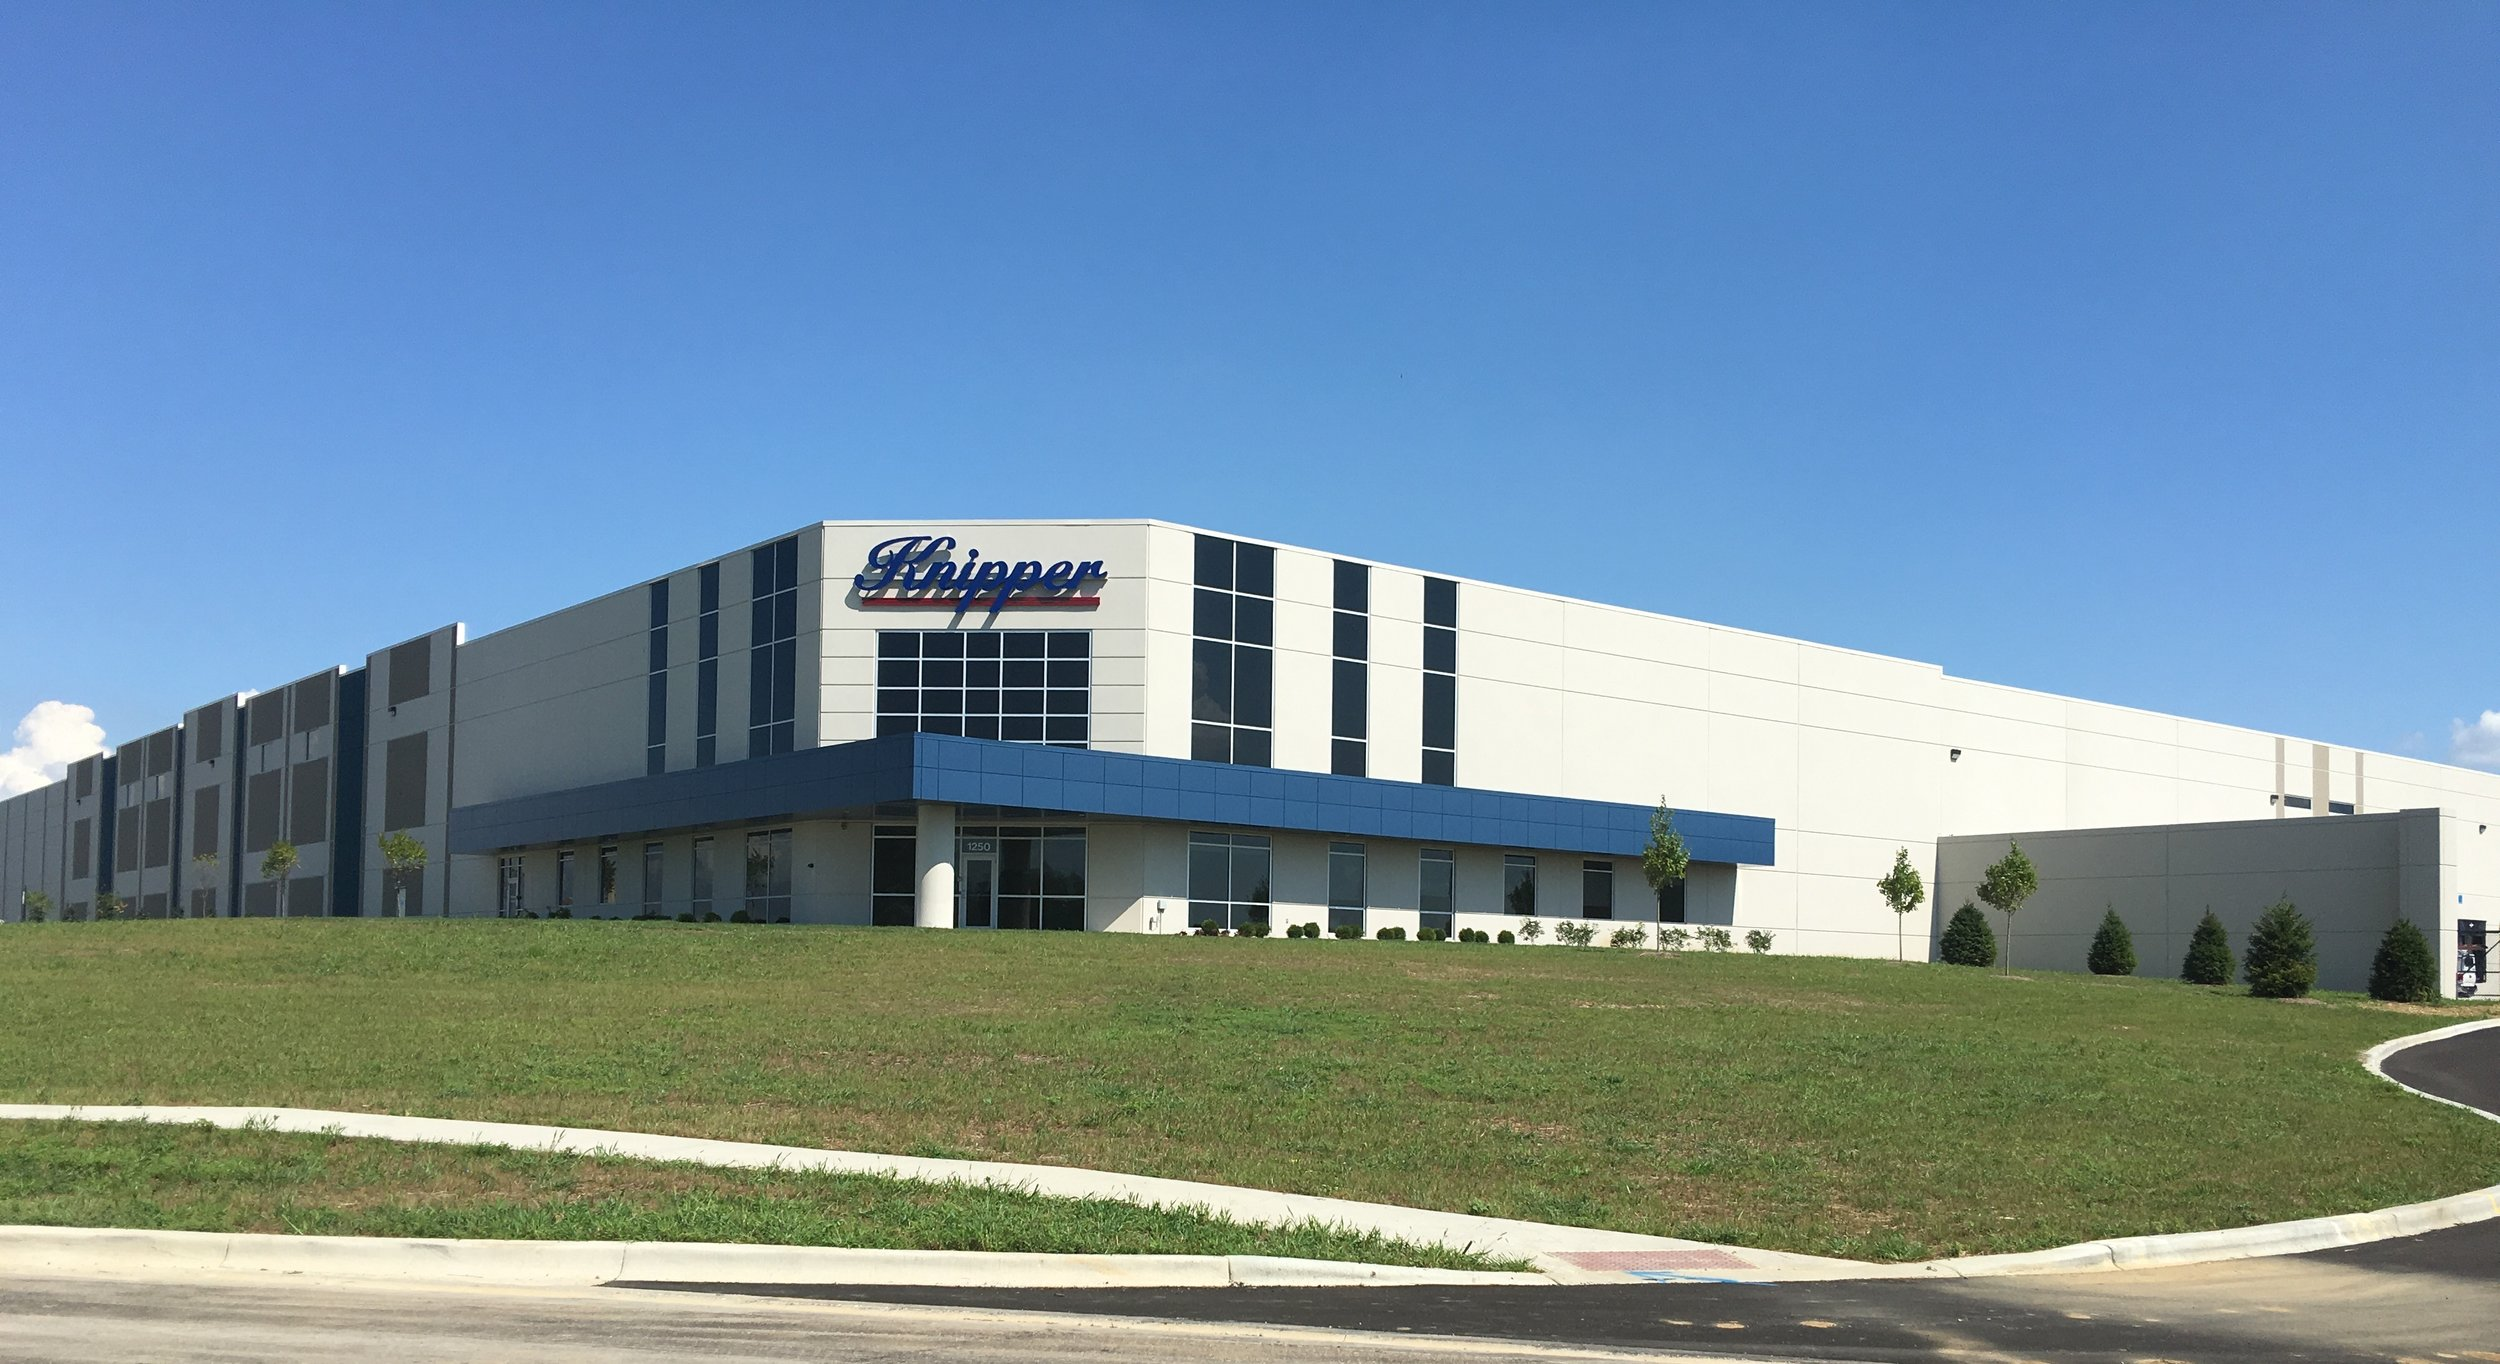 KNIPPER – RIVER RIDGE COMMERCE CENTER